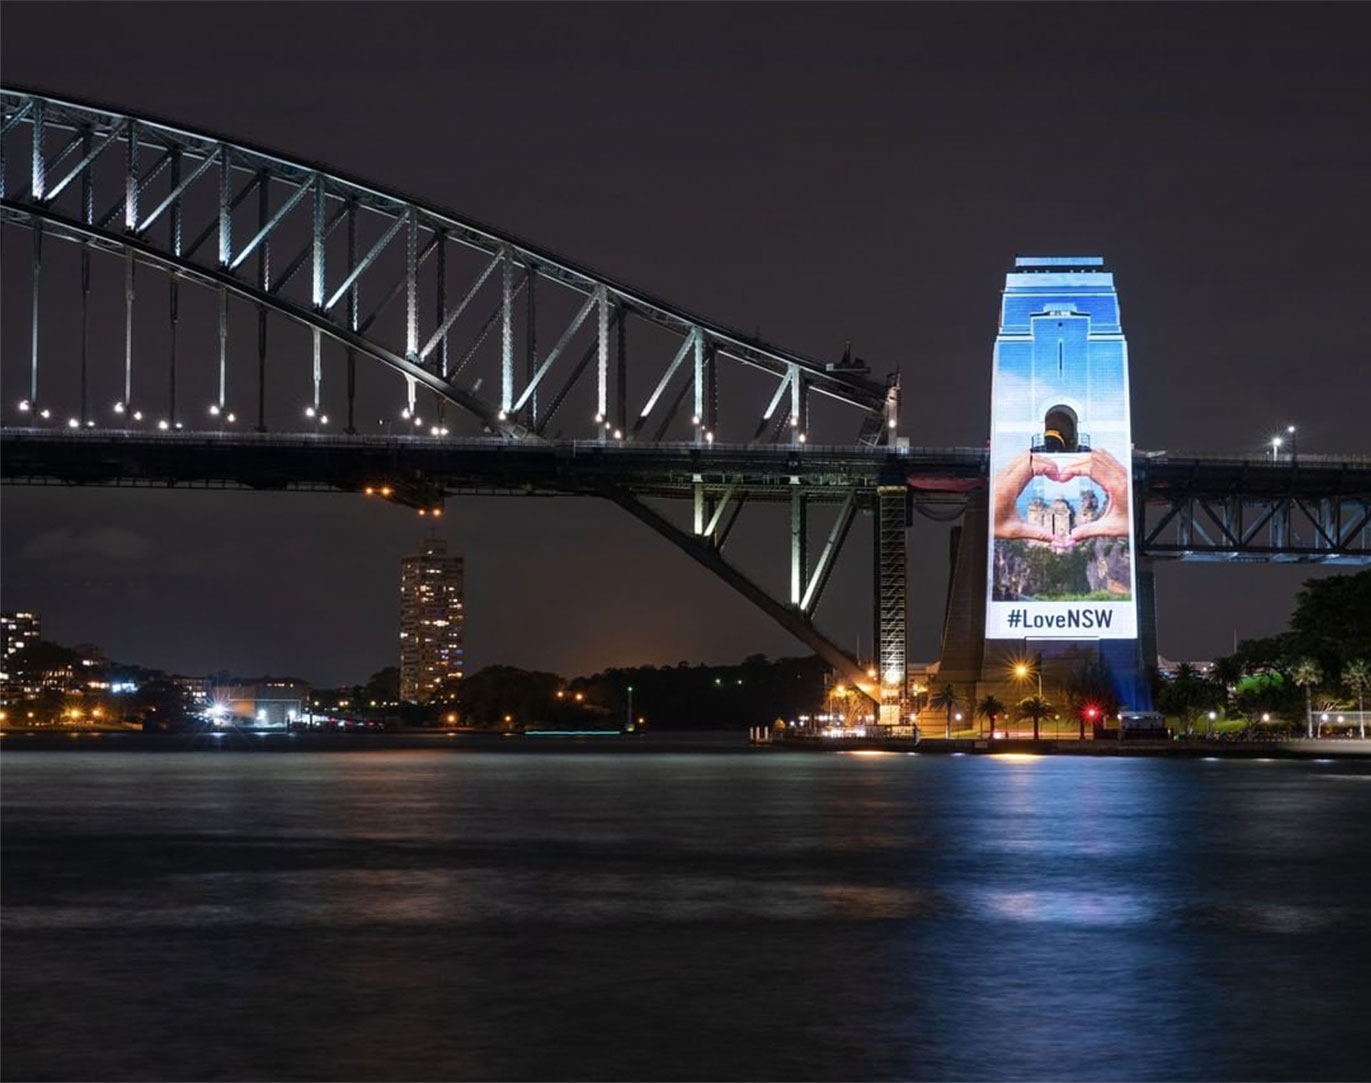 An image of the Sydney Harbour Bridge with a projection on the pylon saying #LoveNSW